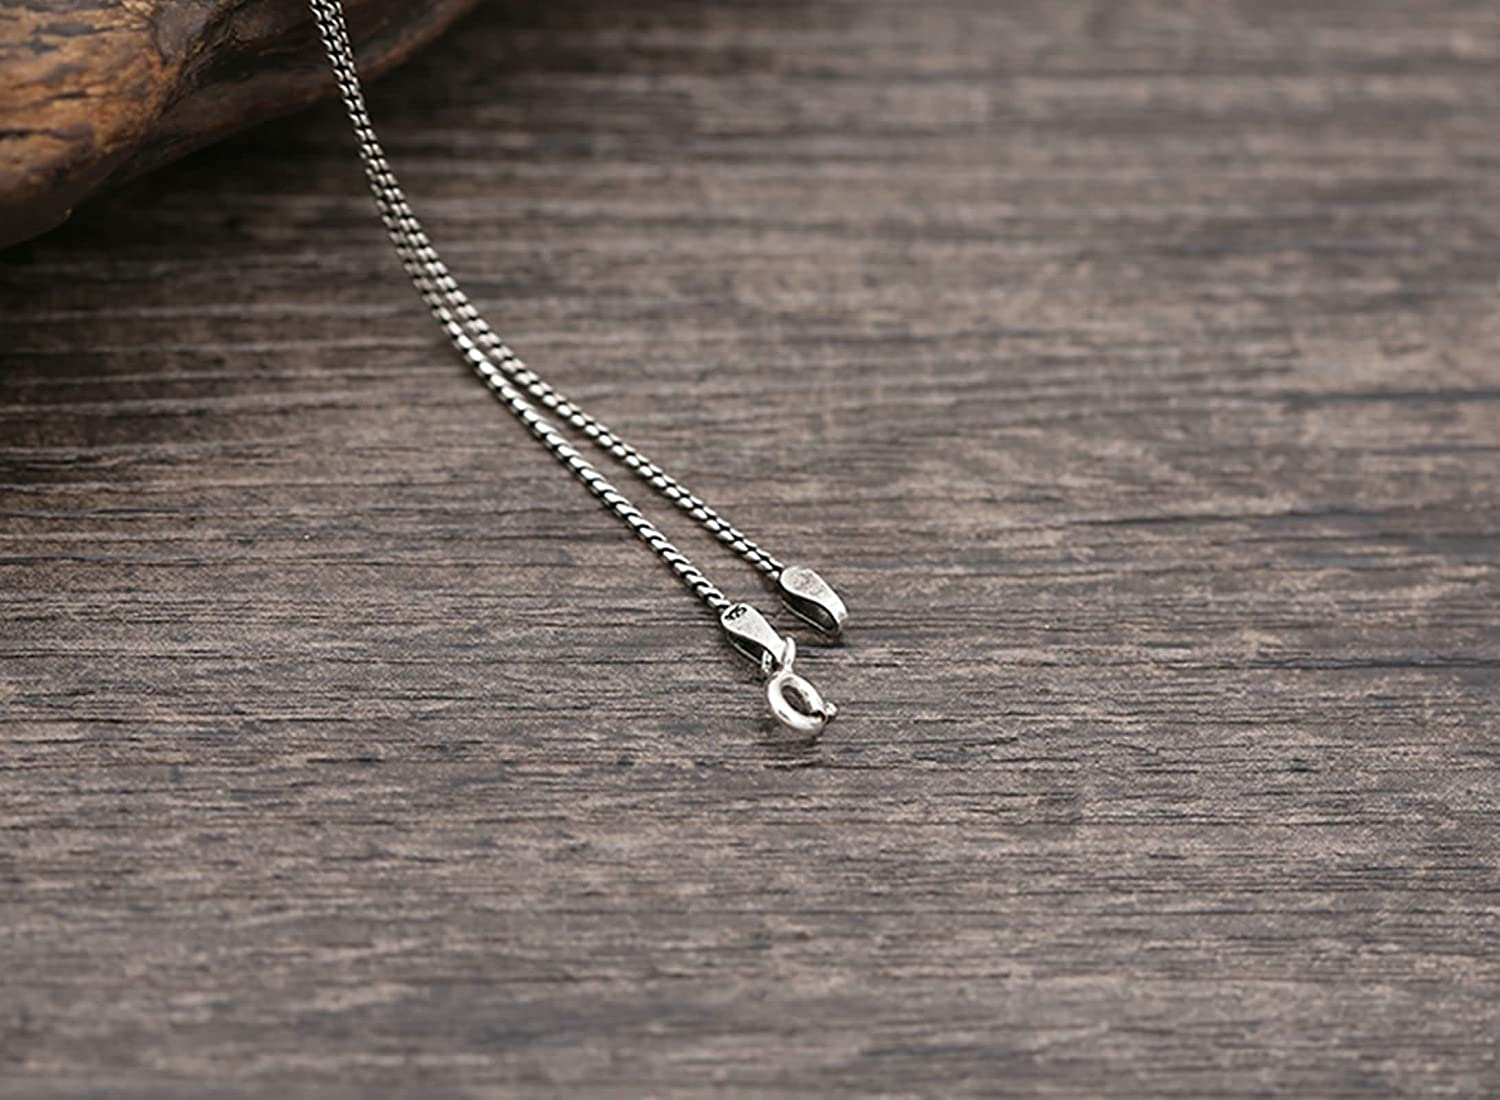 Aooaz Jewelry Pendant Necklaces for Men Women Silver Material Necklace Snake Chain Chain Necklace